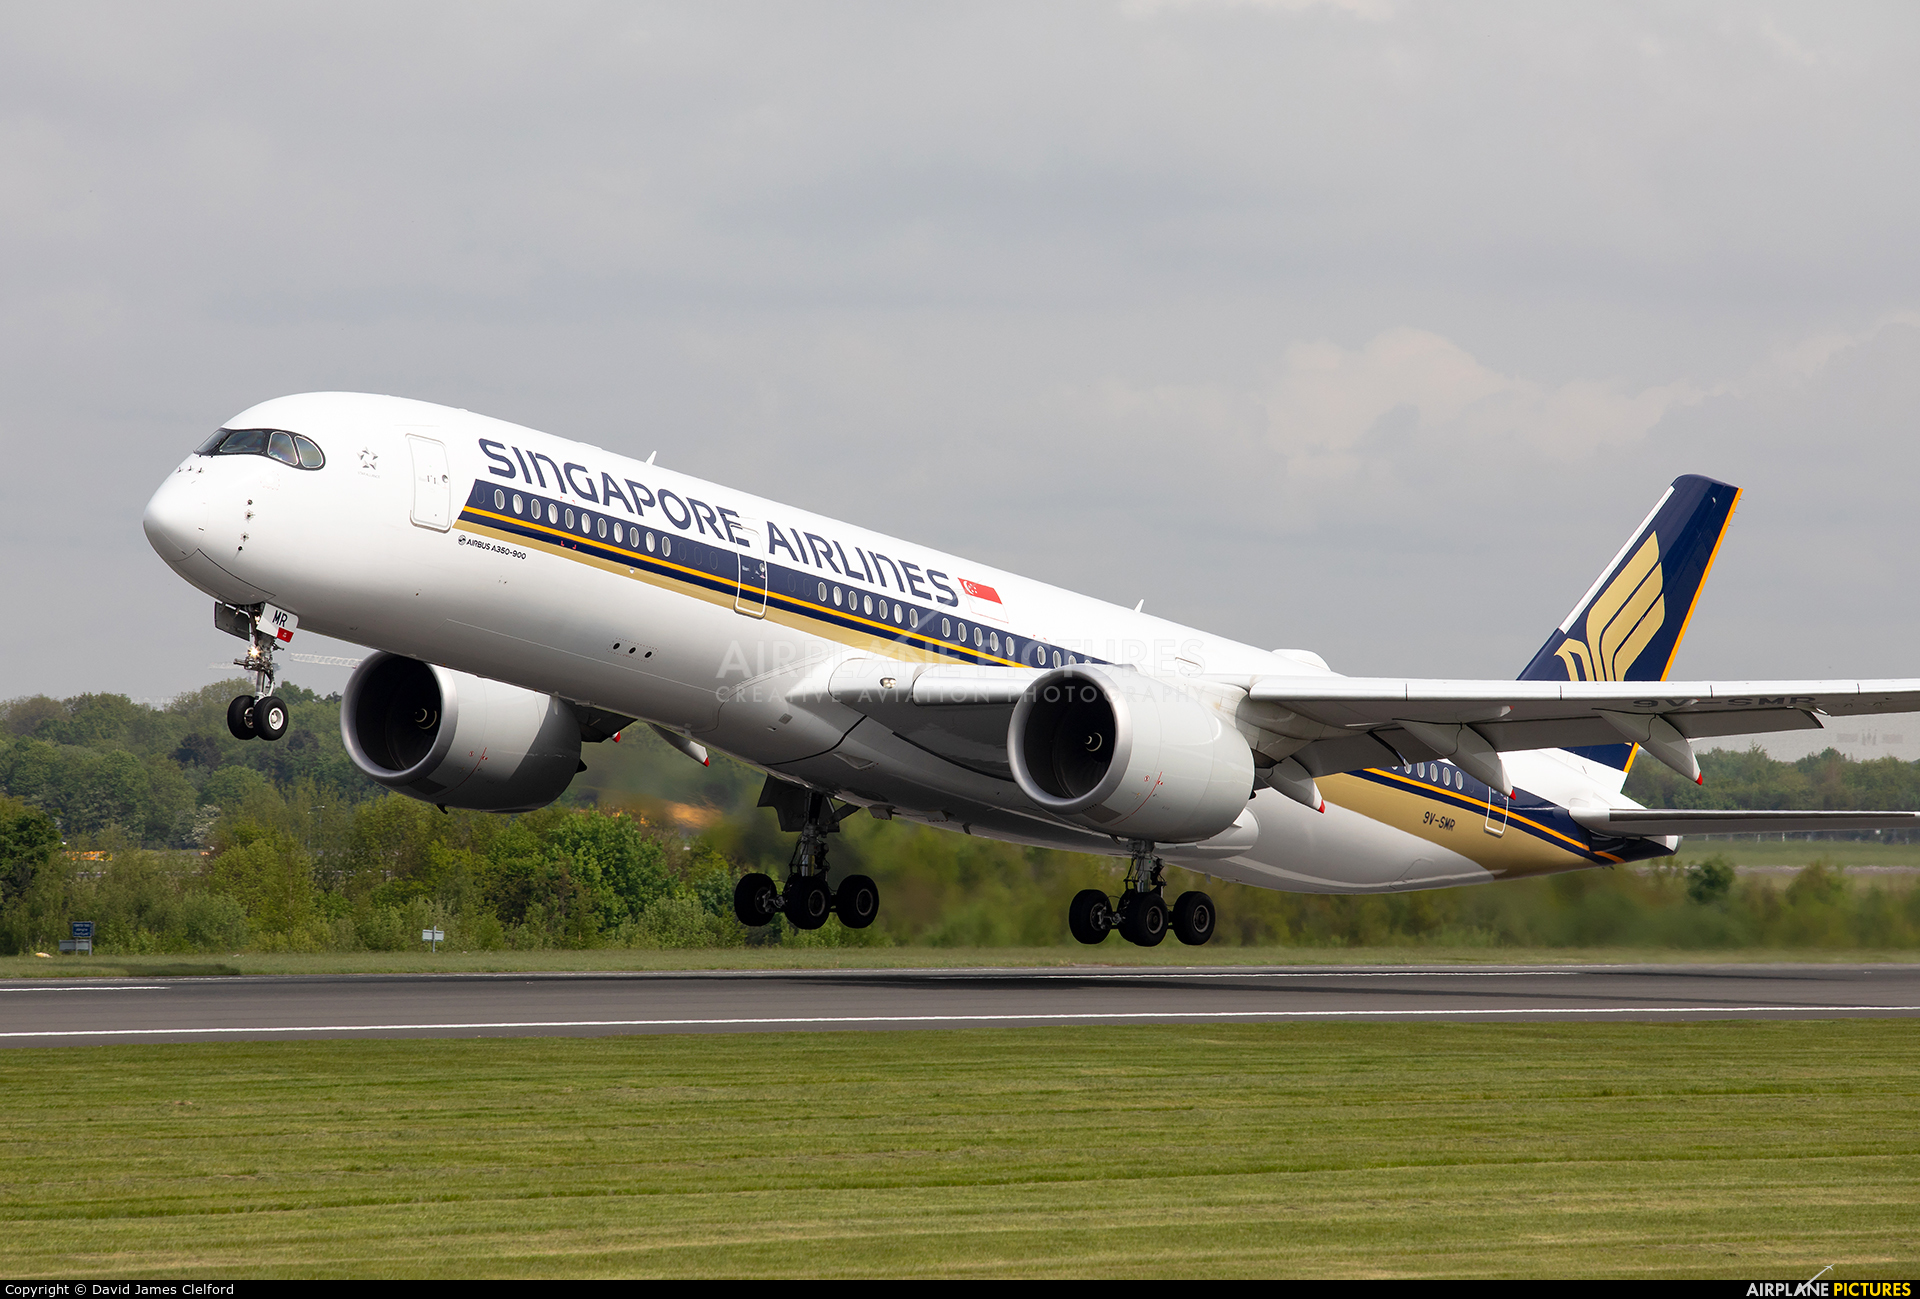 Singapore Airlines 9V-SMR aircraft at Manchester